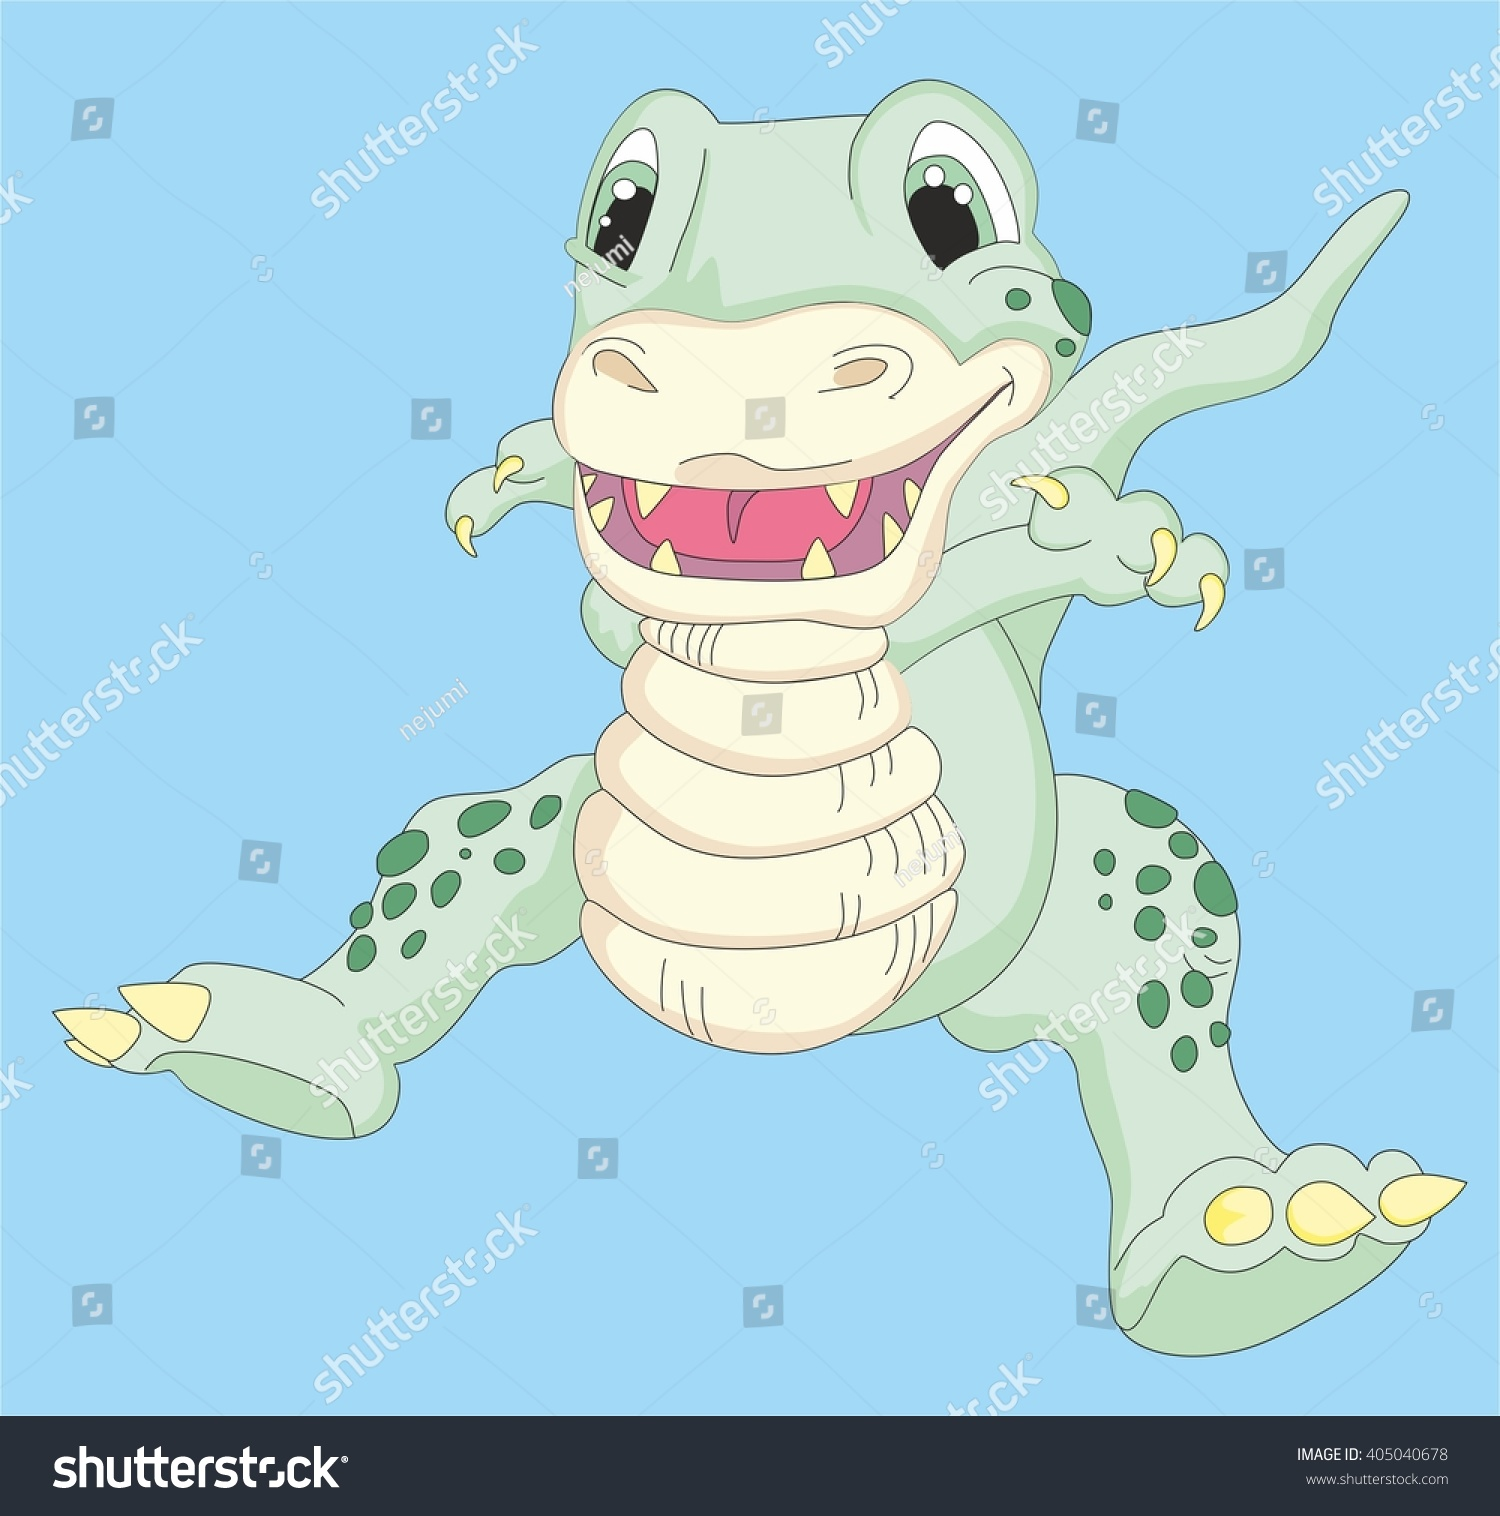 Cute cartoon dragon picture character toy stock vector 405040678 cute cartoon dragon picture a character to a toy store or a childrens book voltagebd Choice Image